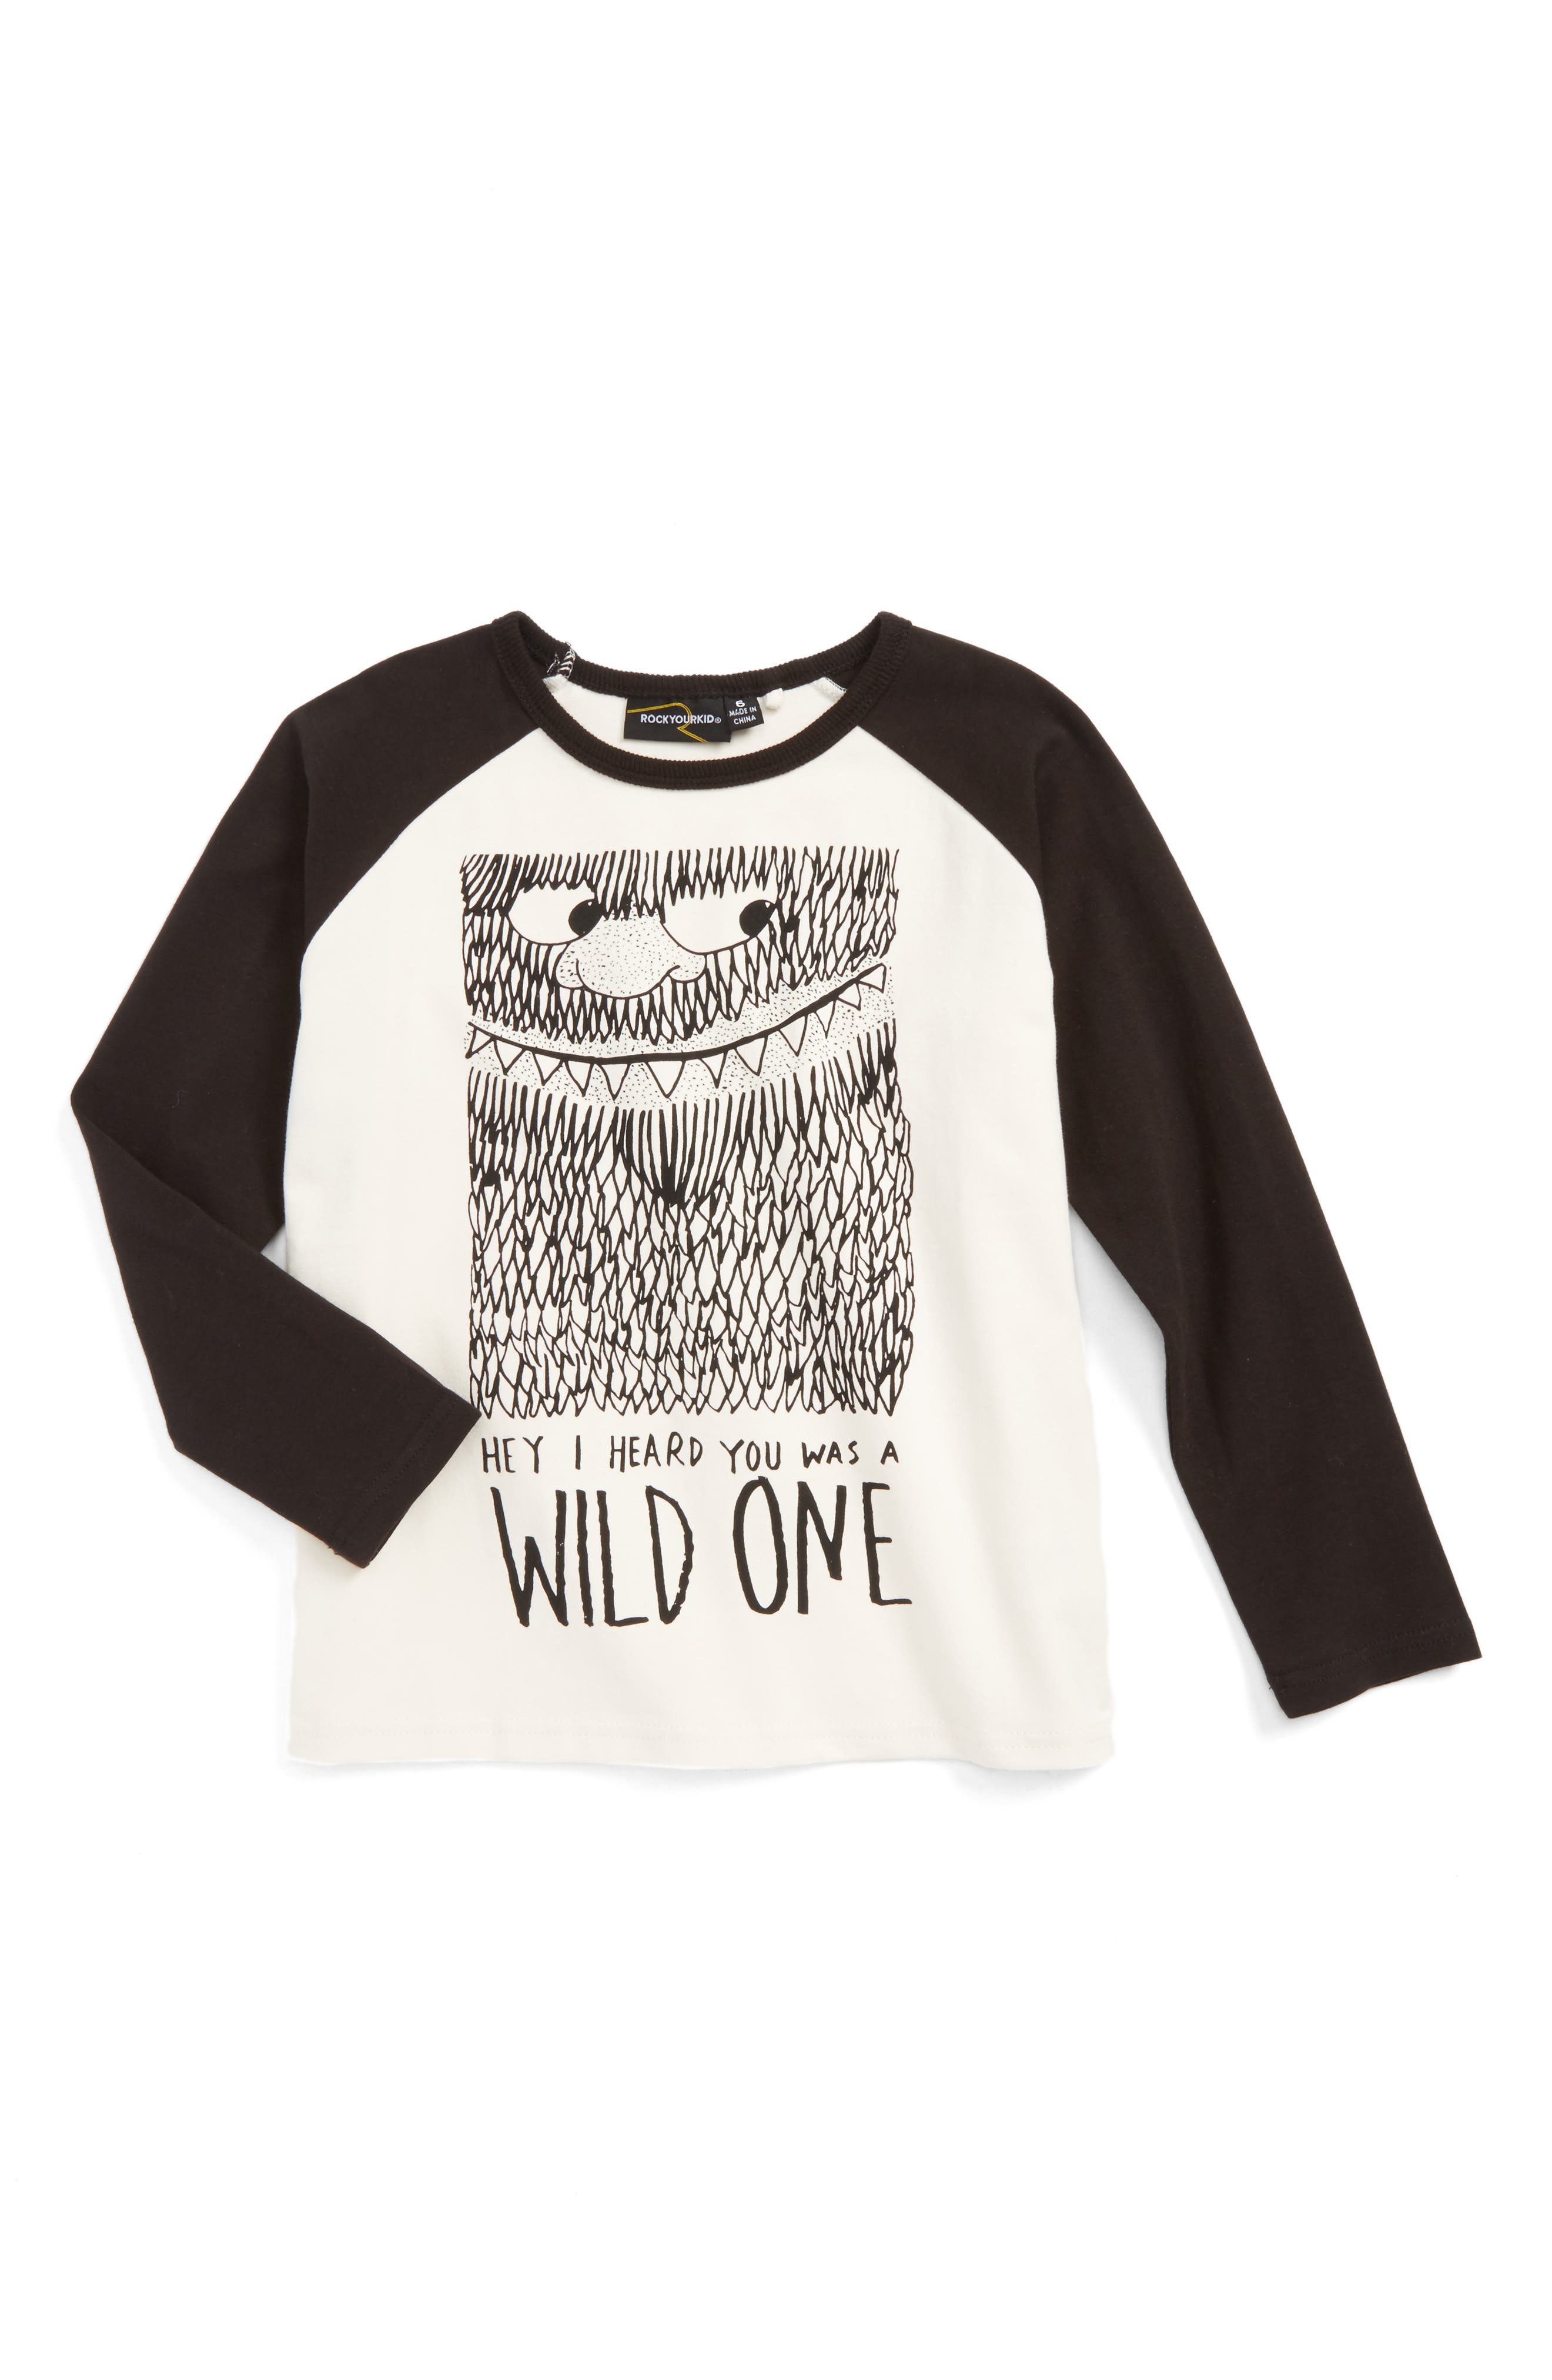 ROCK YOUR BABY Wild One Graphic Baseball T-Shirt